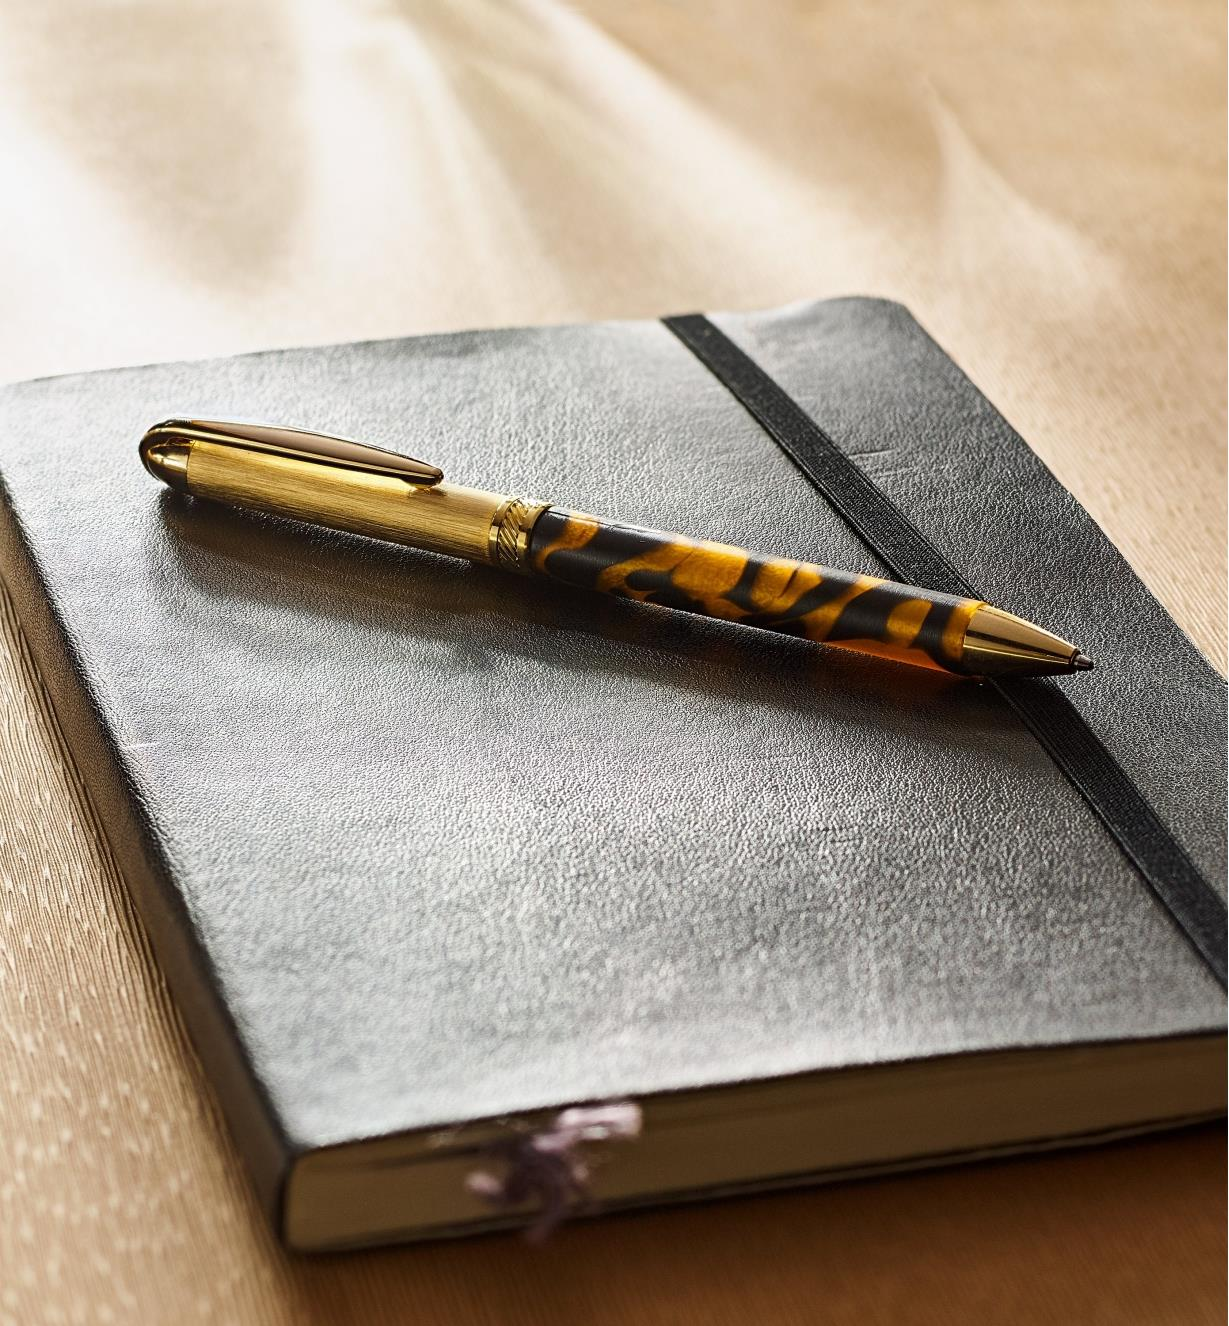 Example of a Surfix Duo gold/gunmetal pen turned from an acrylic acetate blank, lying on a closed notebook